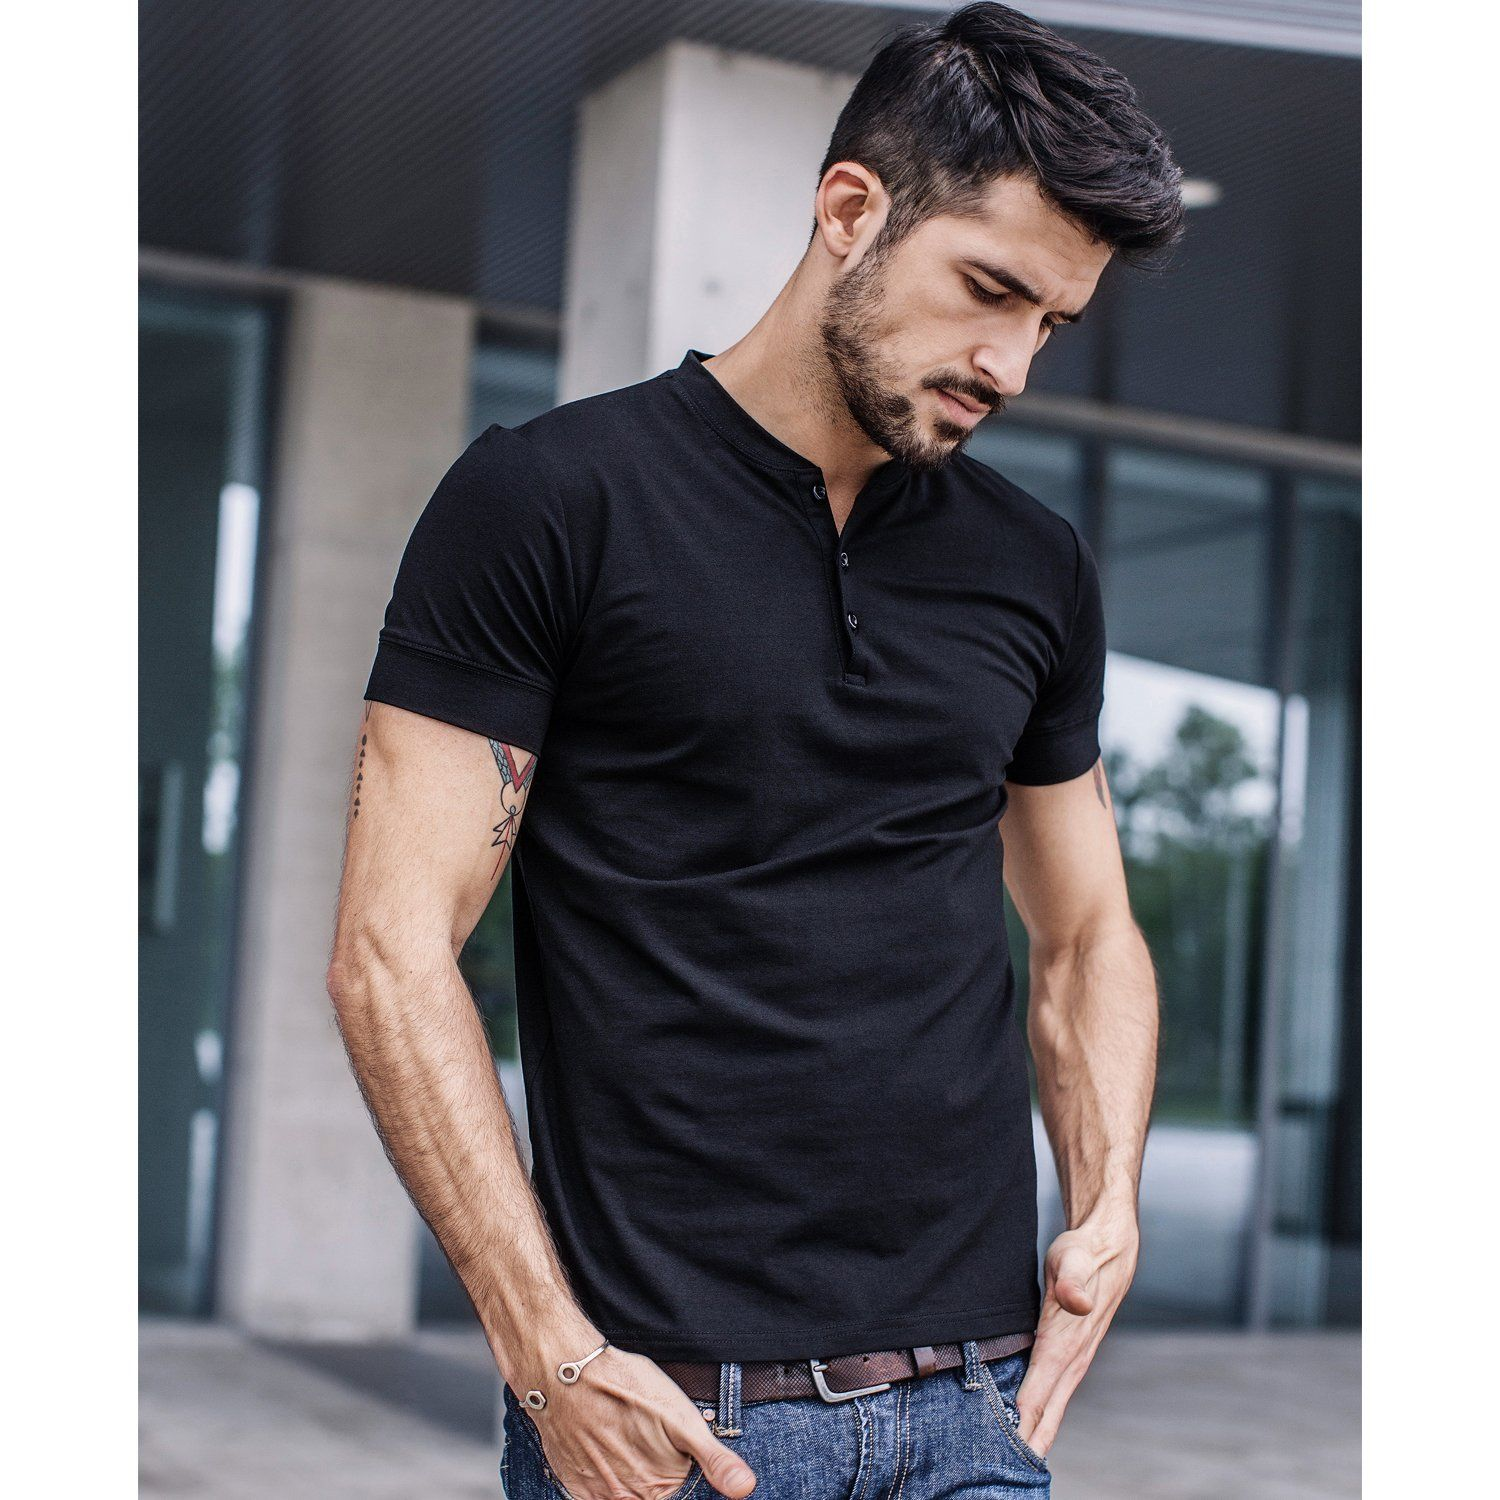 UK Men V Neck Short Sleeve Muscle Tee Shirts Slim Fit Casual Solid T-shirt Tops